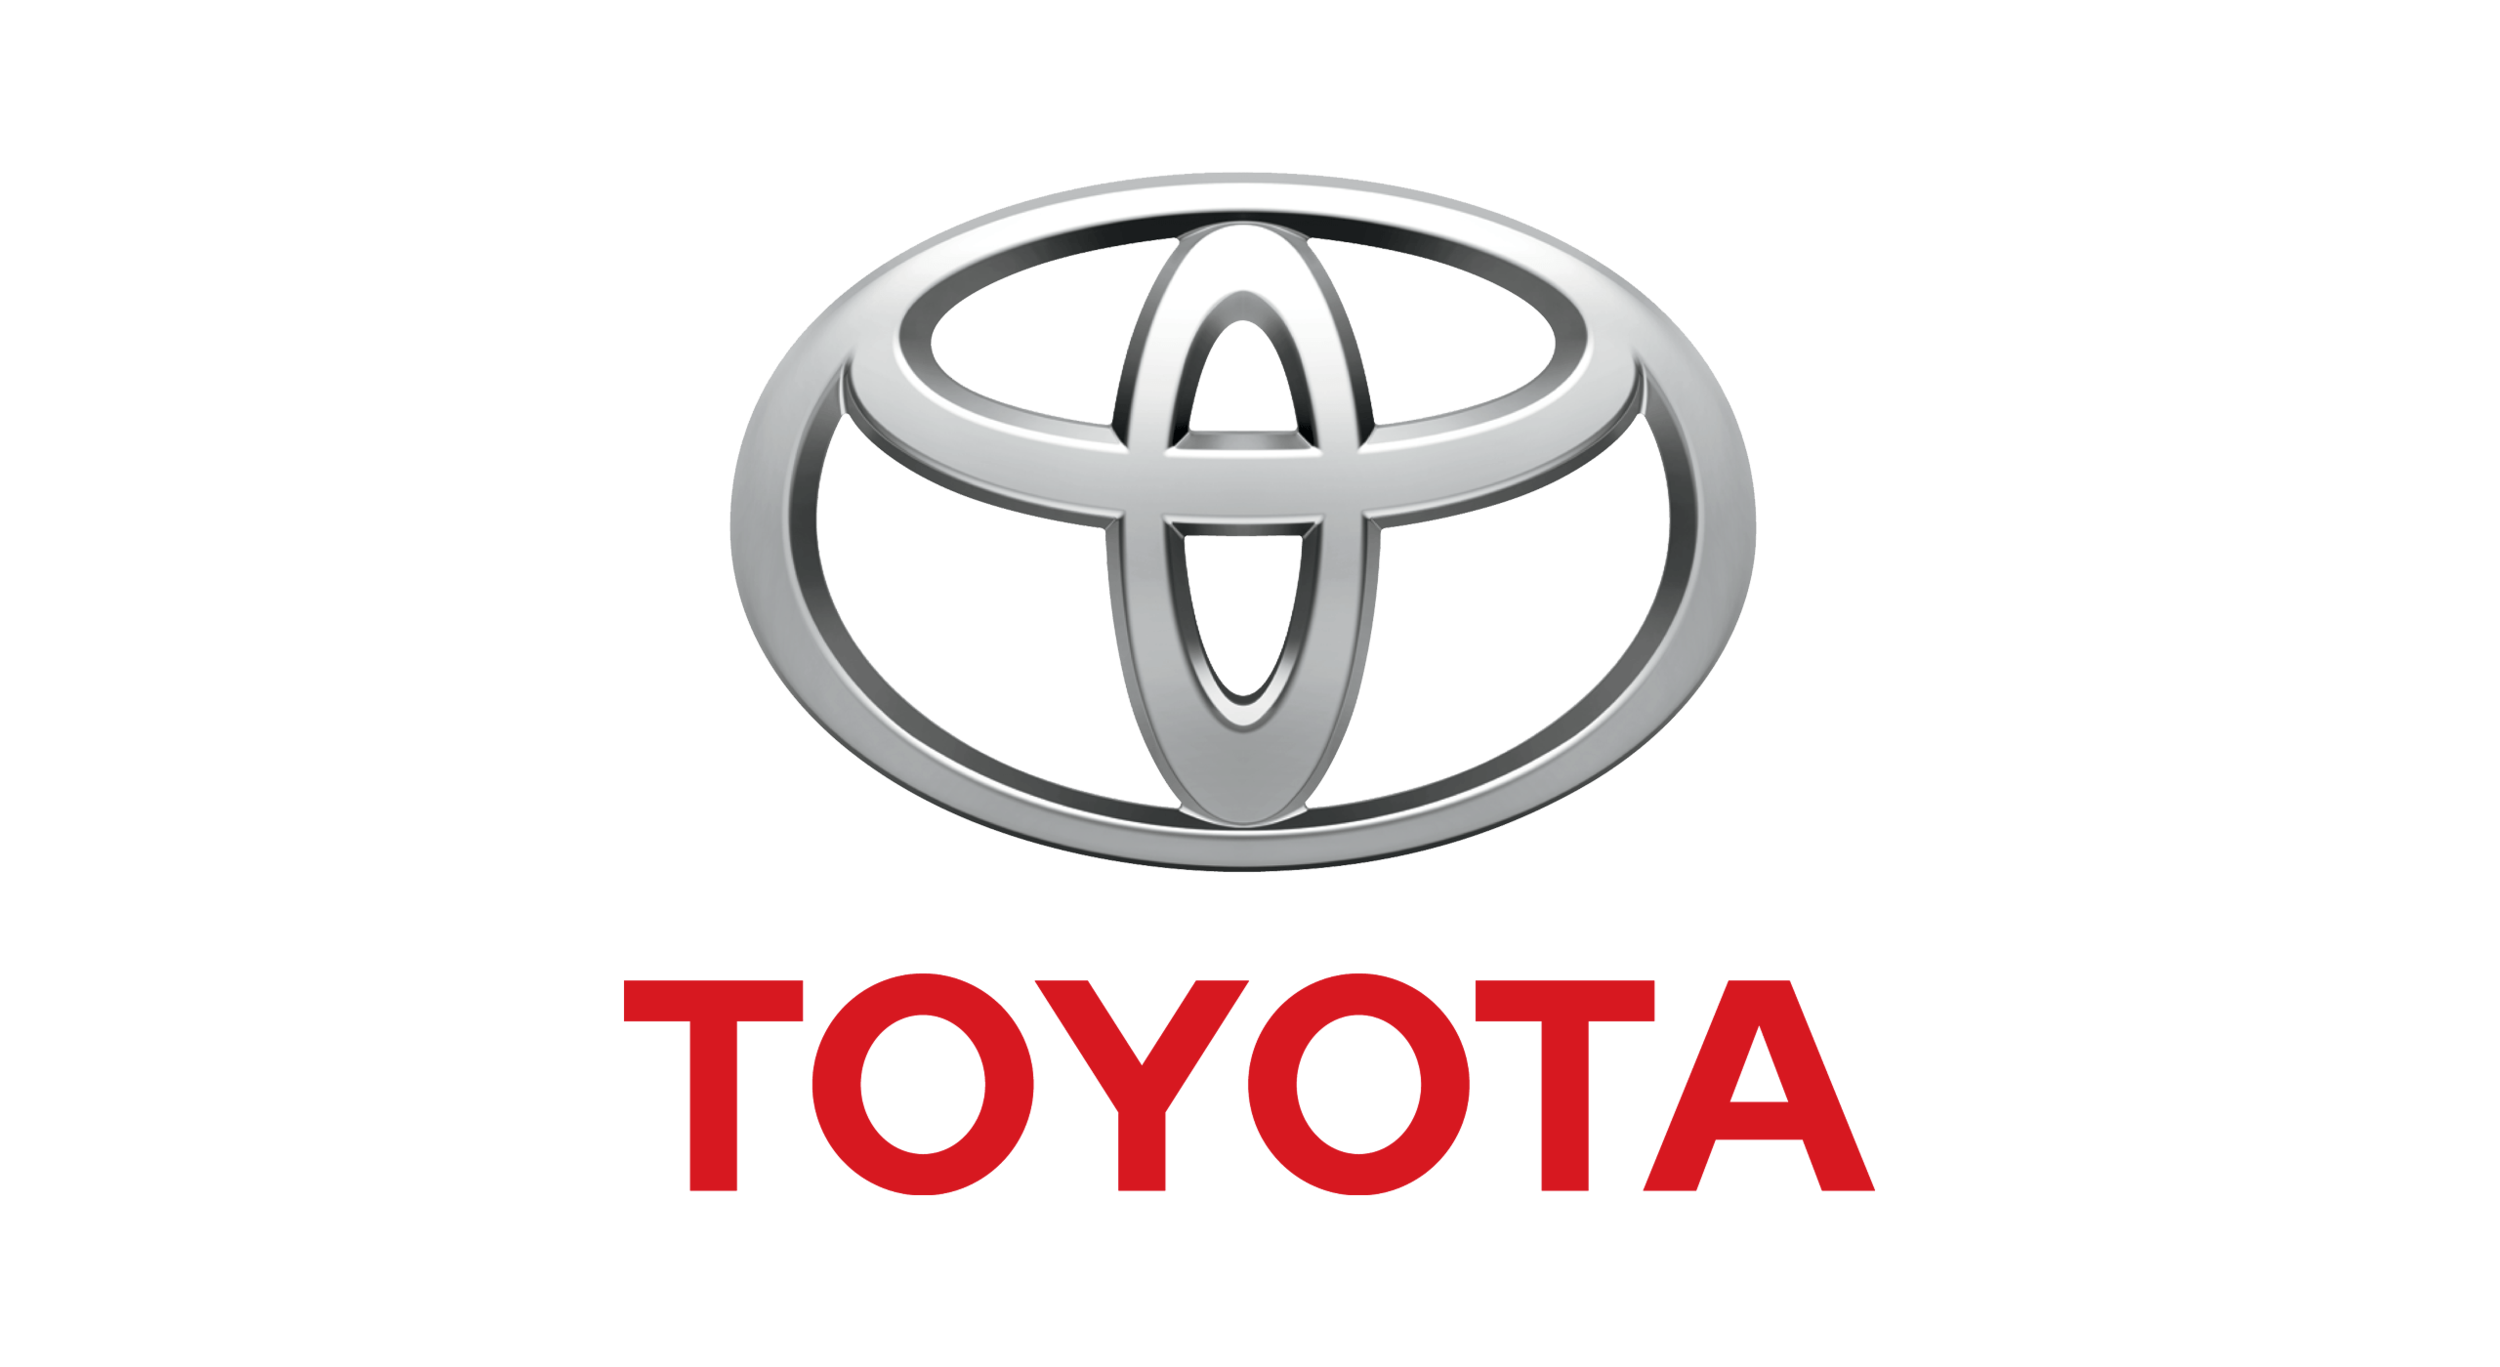 Toyota Scion Commercial   With over 100 cast and crew, we provided full catering services over multiple days.